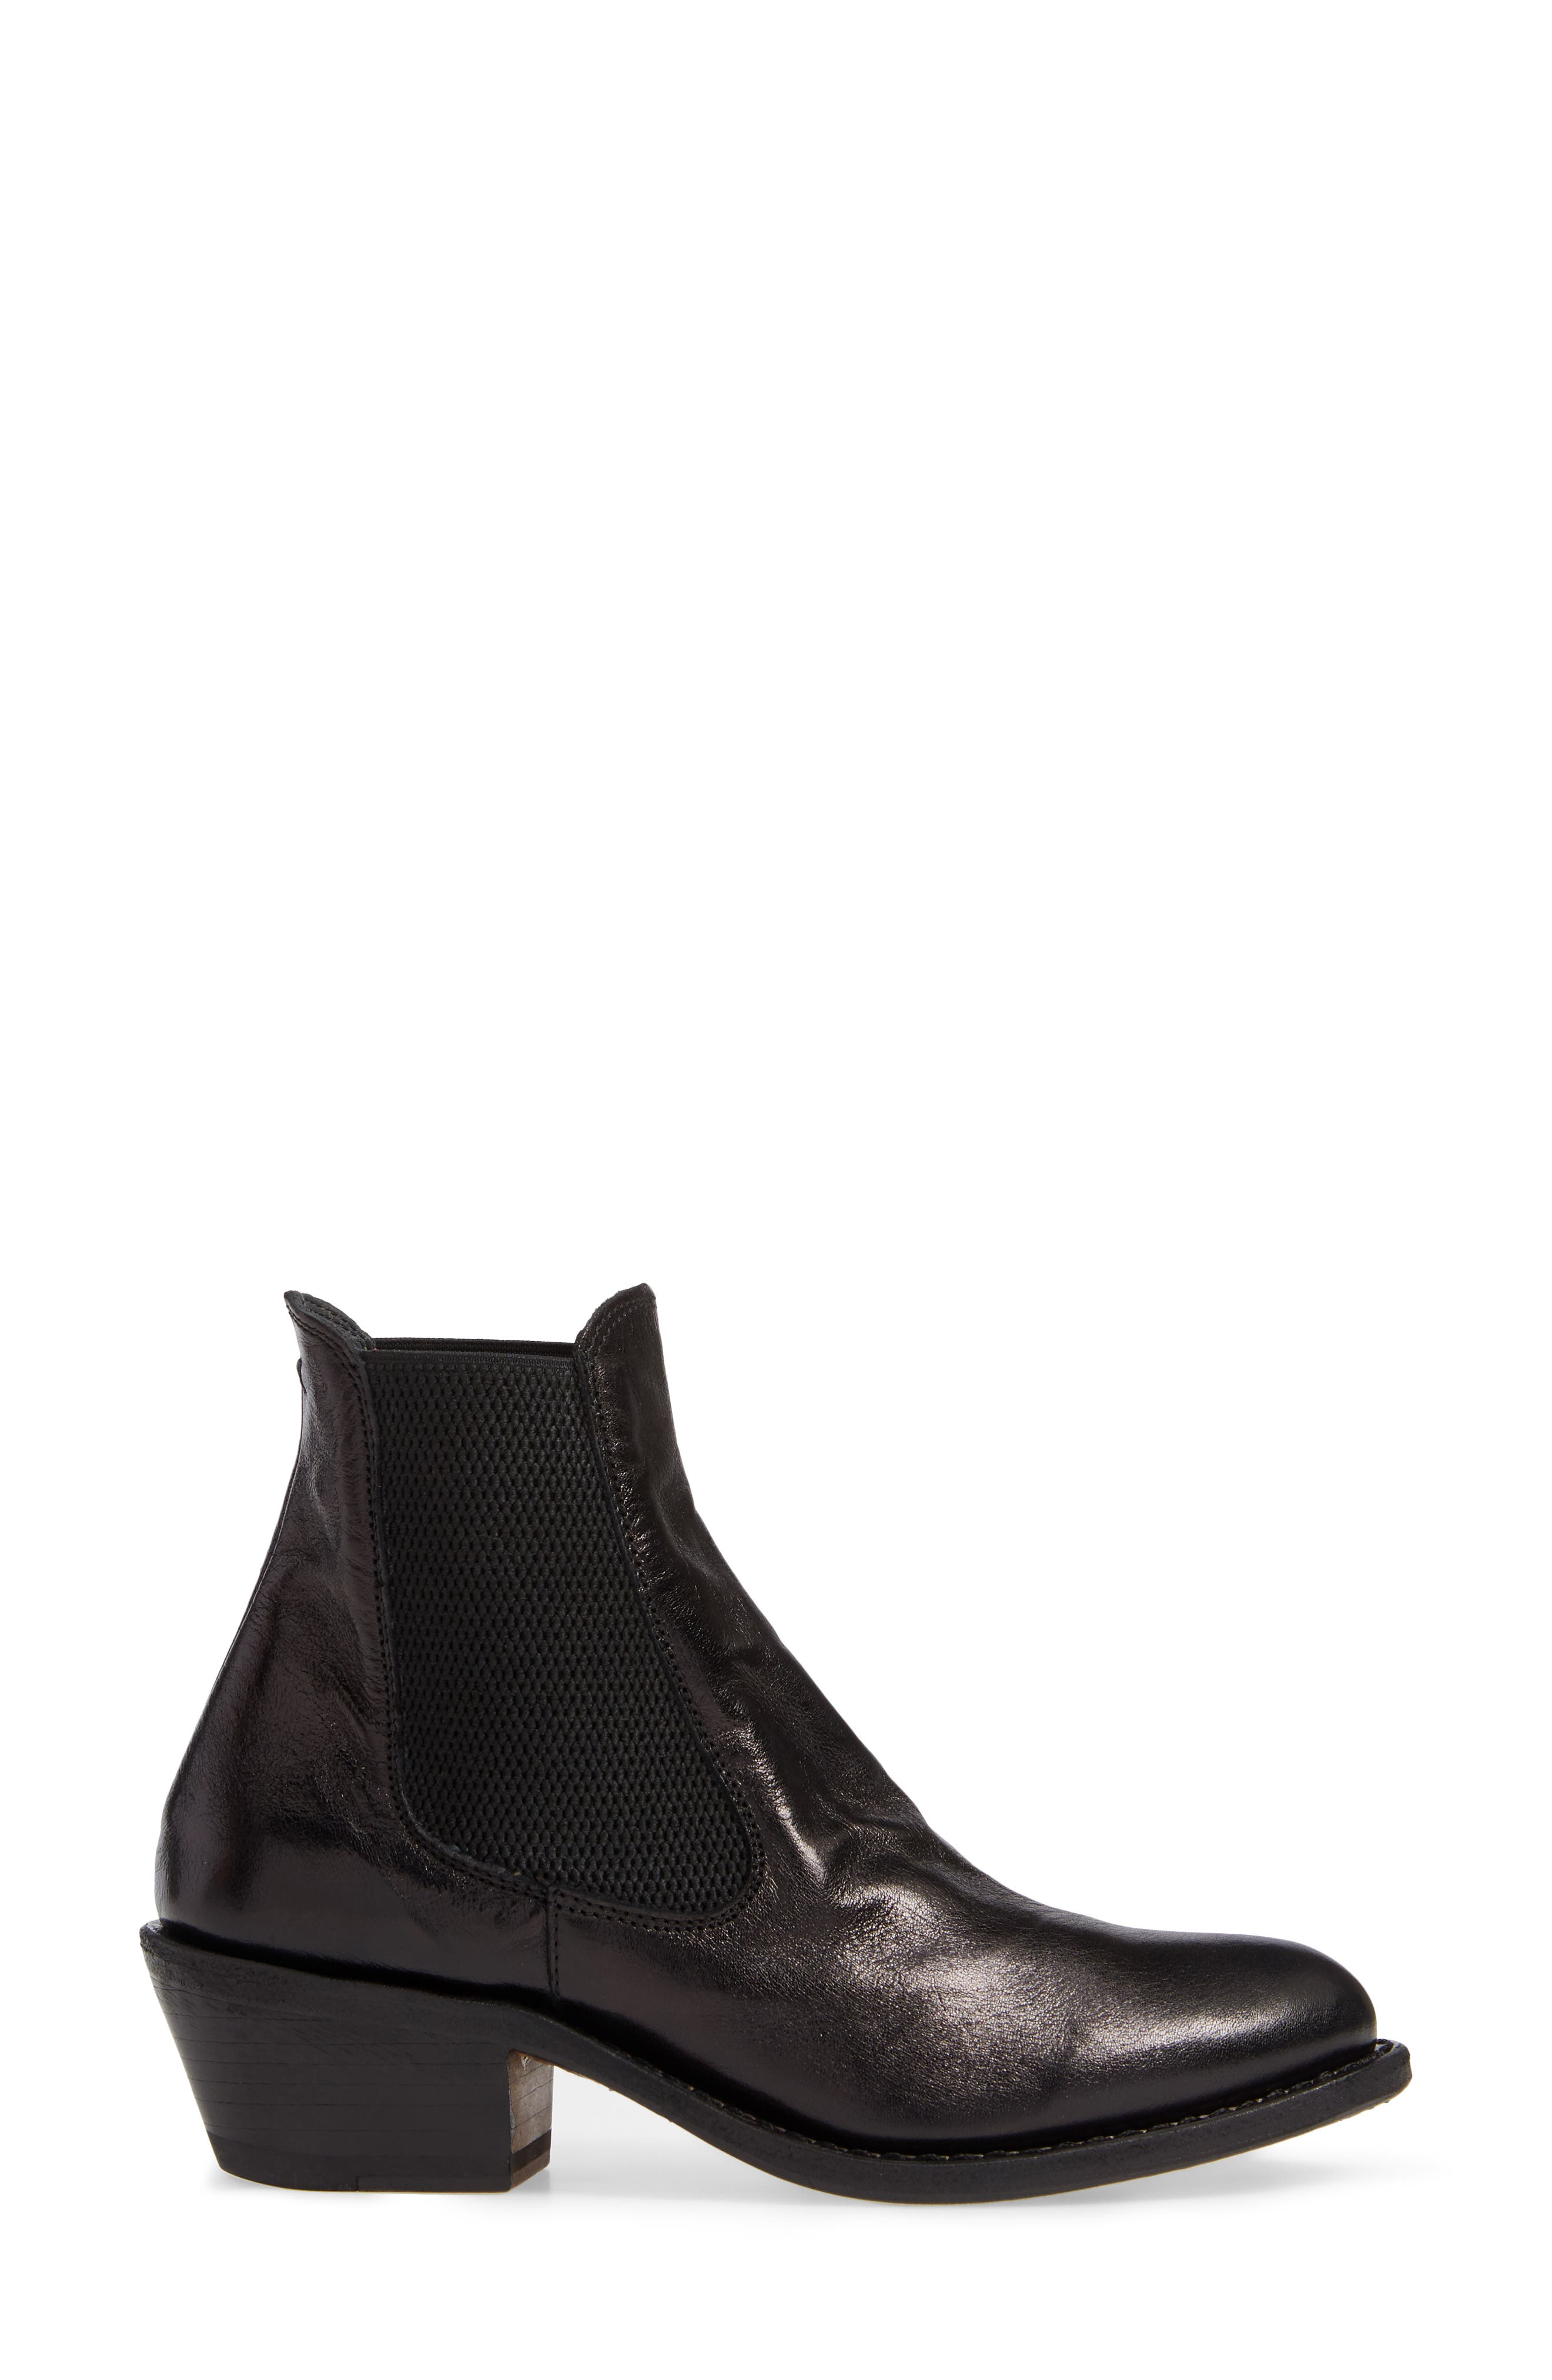 Roxy Boot,                             Alternate thumbnail 3, color,                             BLACK LEATHER